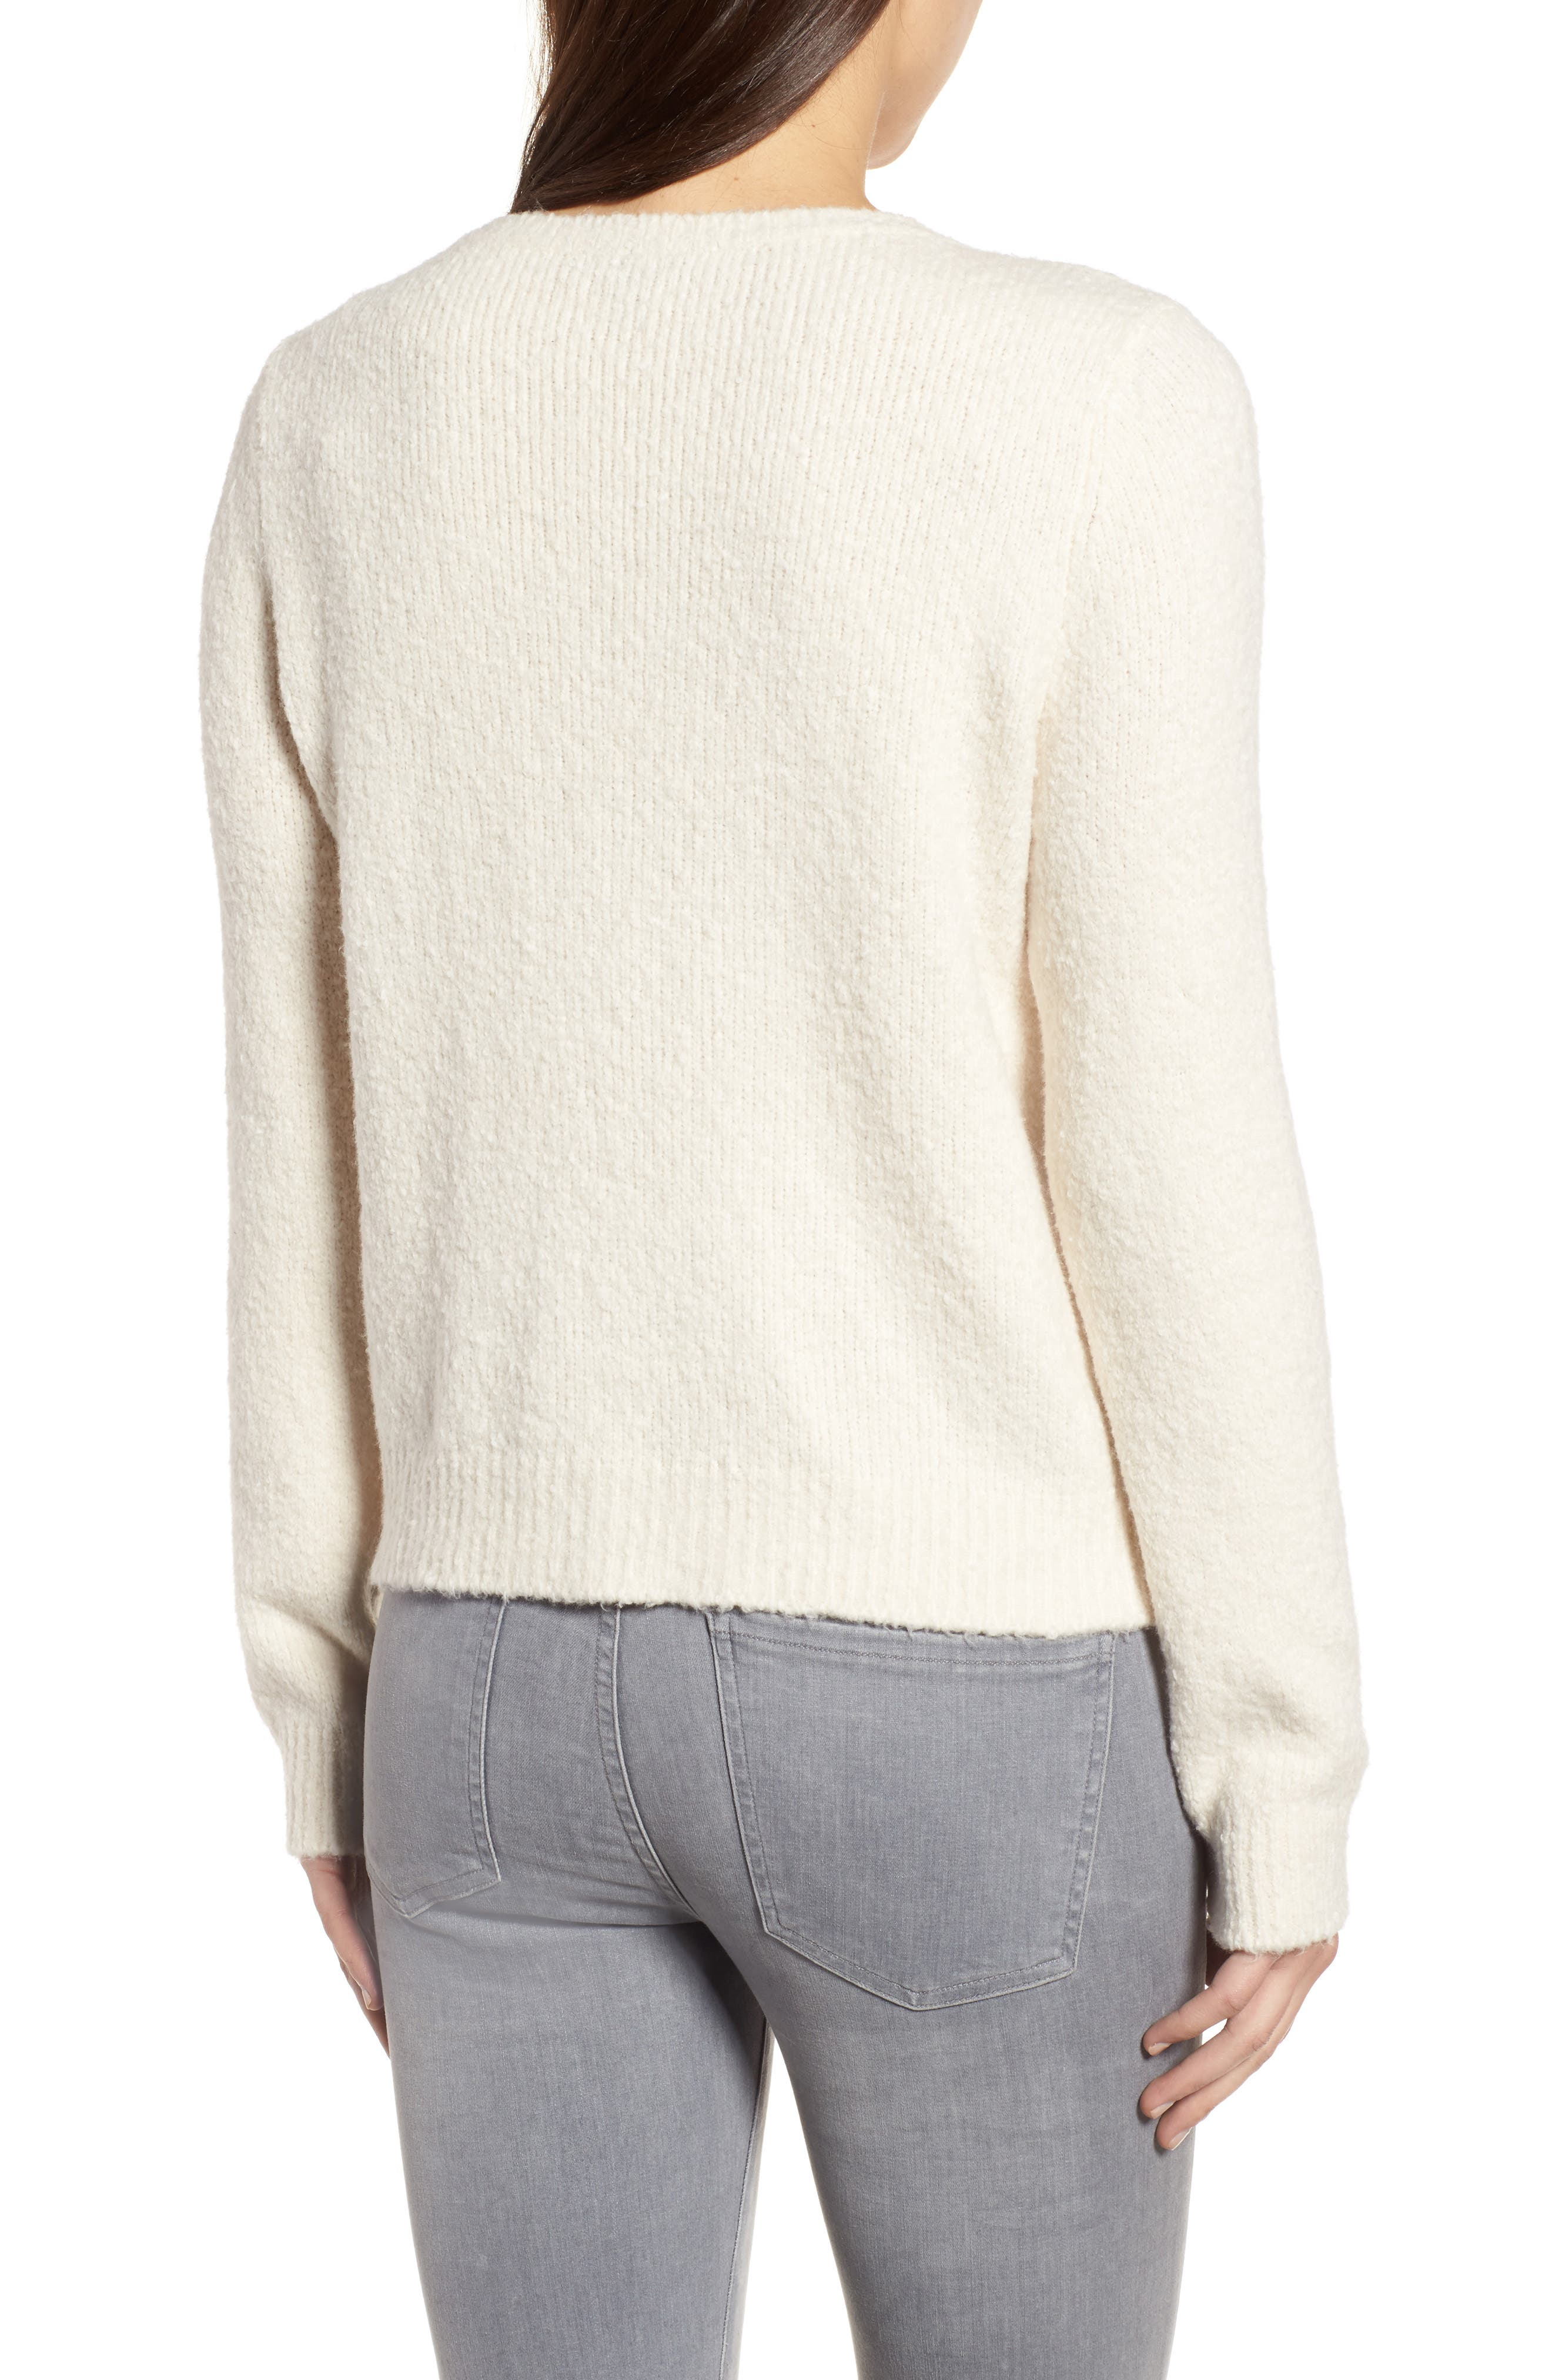 Organic Cotton Blend Sweater,                             Alternate thumbnail 2, color,                             103